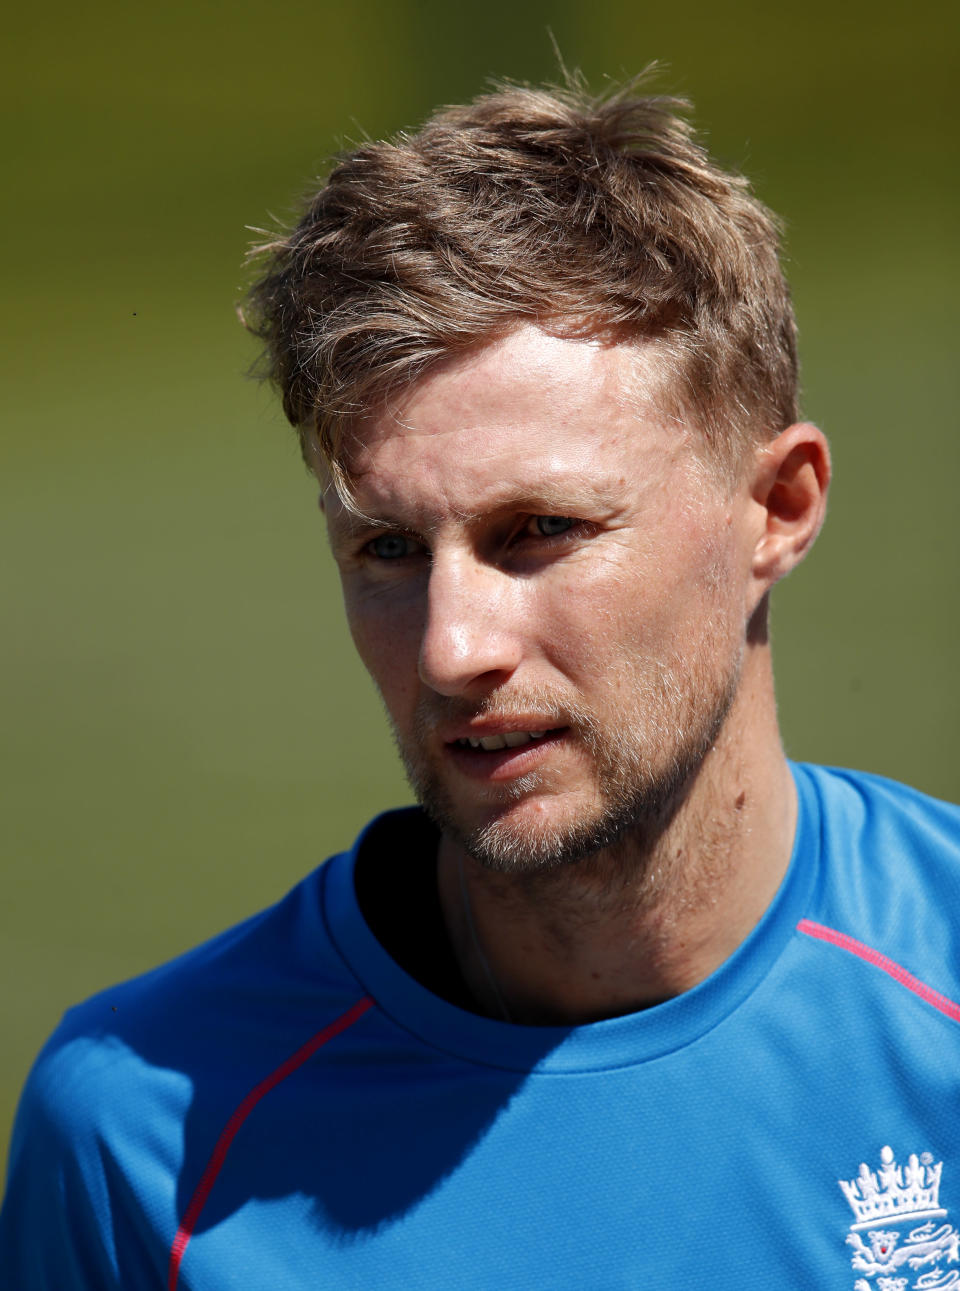 England's Joe Root during a practice session at Lord's Cricket Ground in London, Tuesday, June 1, 2021.New Zealand will play England in the first of two cricket tests here starting June 2. (AP Photo/Andy Couldridge/Pool)